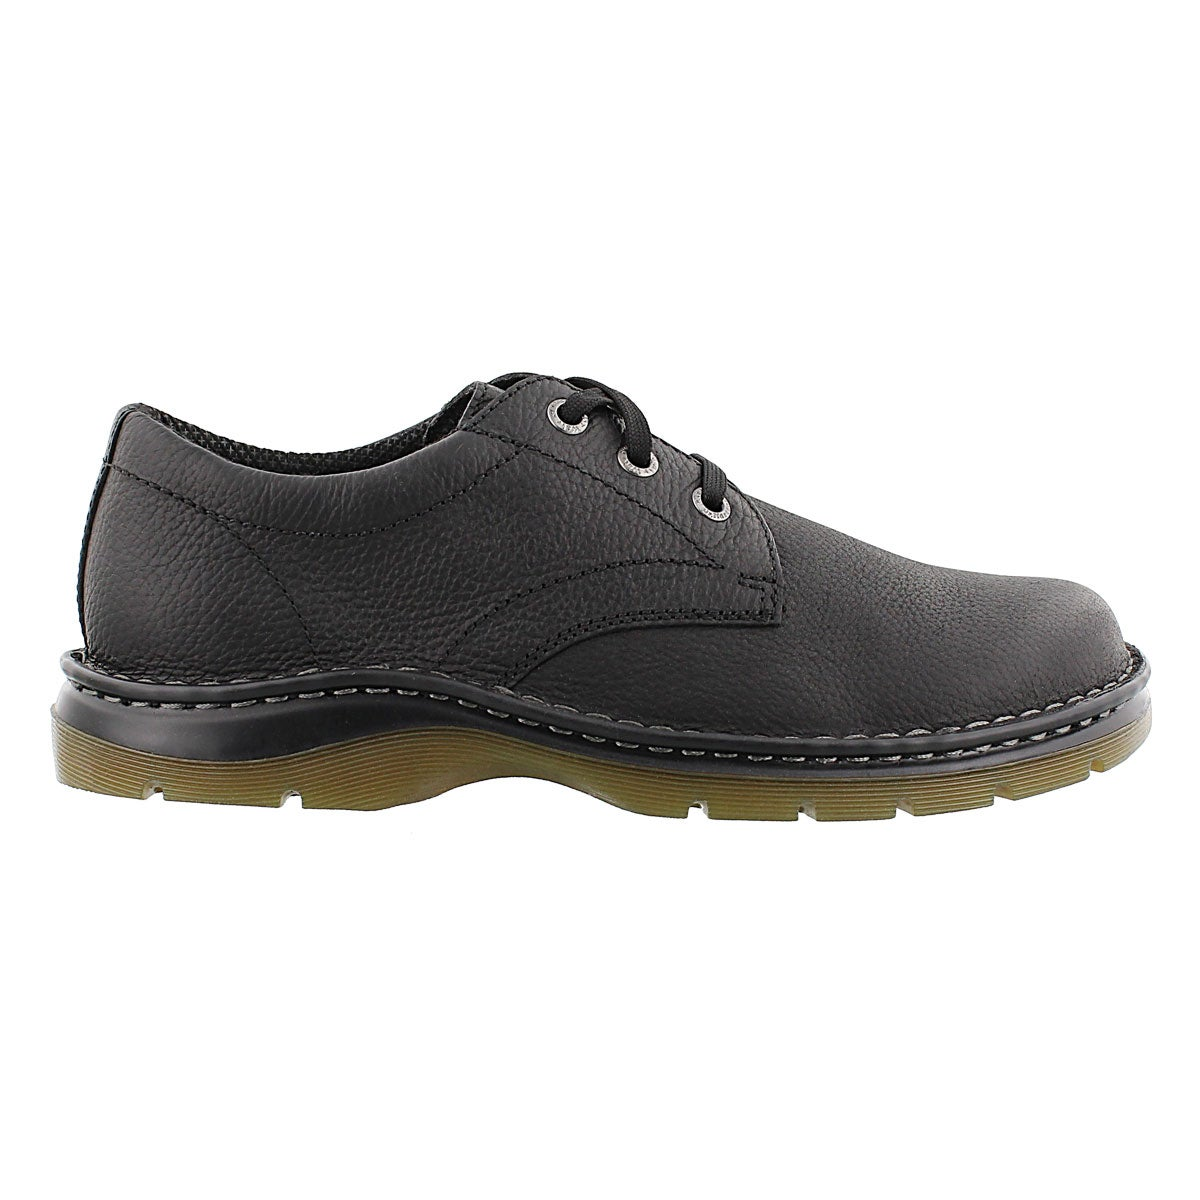 Mns Ordell black 3 eye oxford